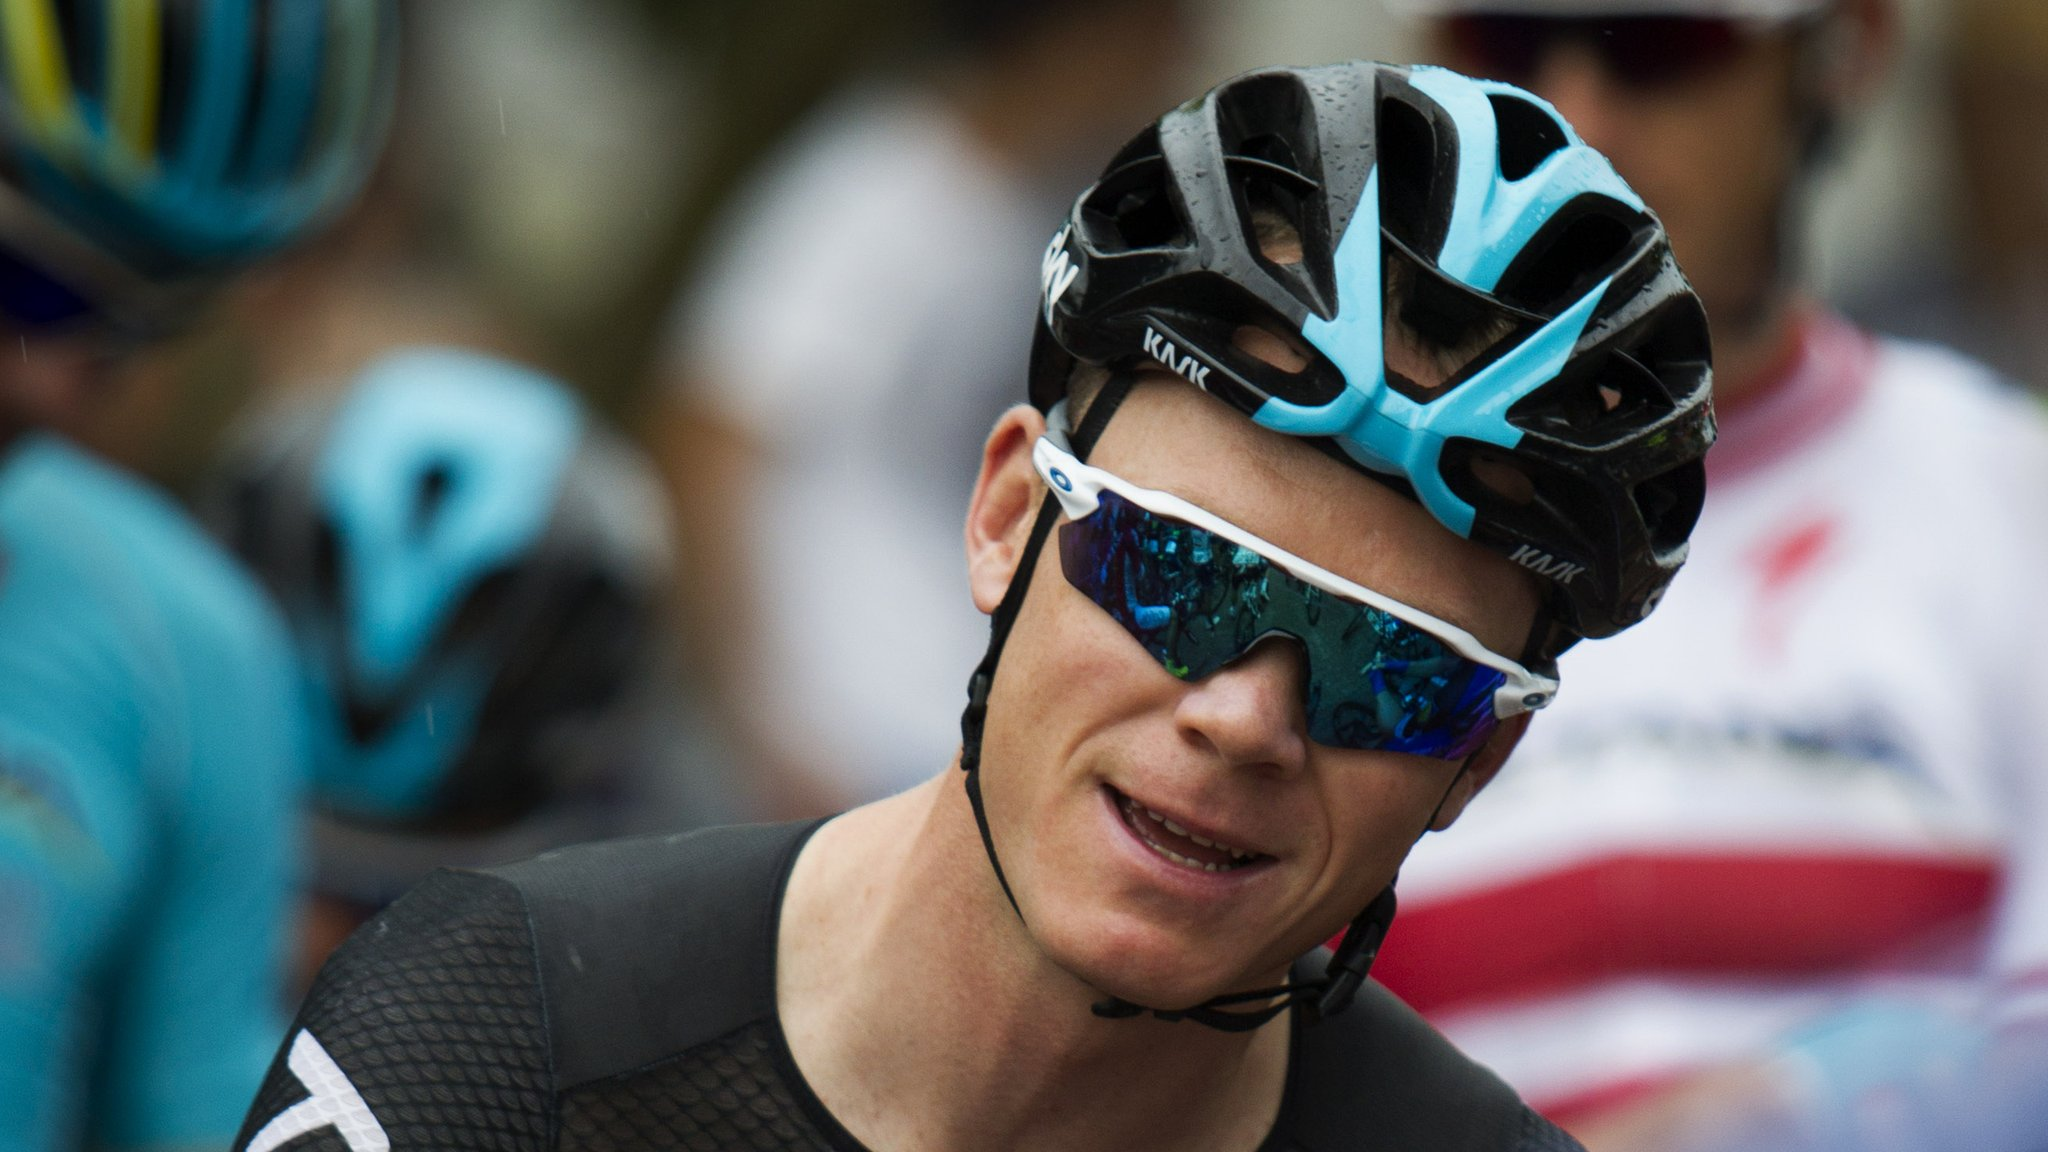 Froome caught up in crash but stays third in Vuelta